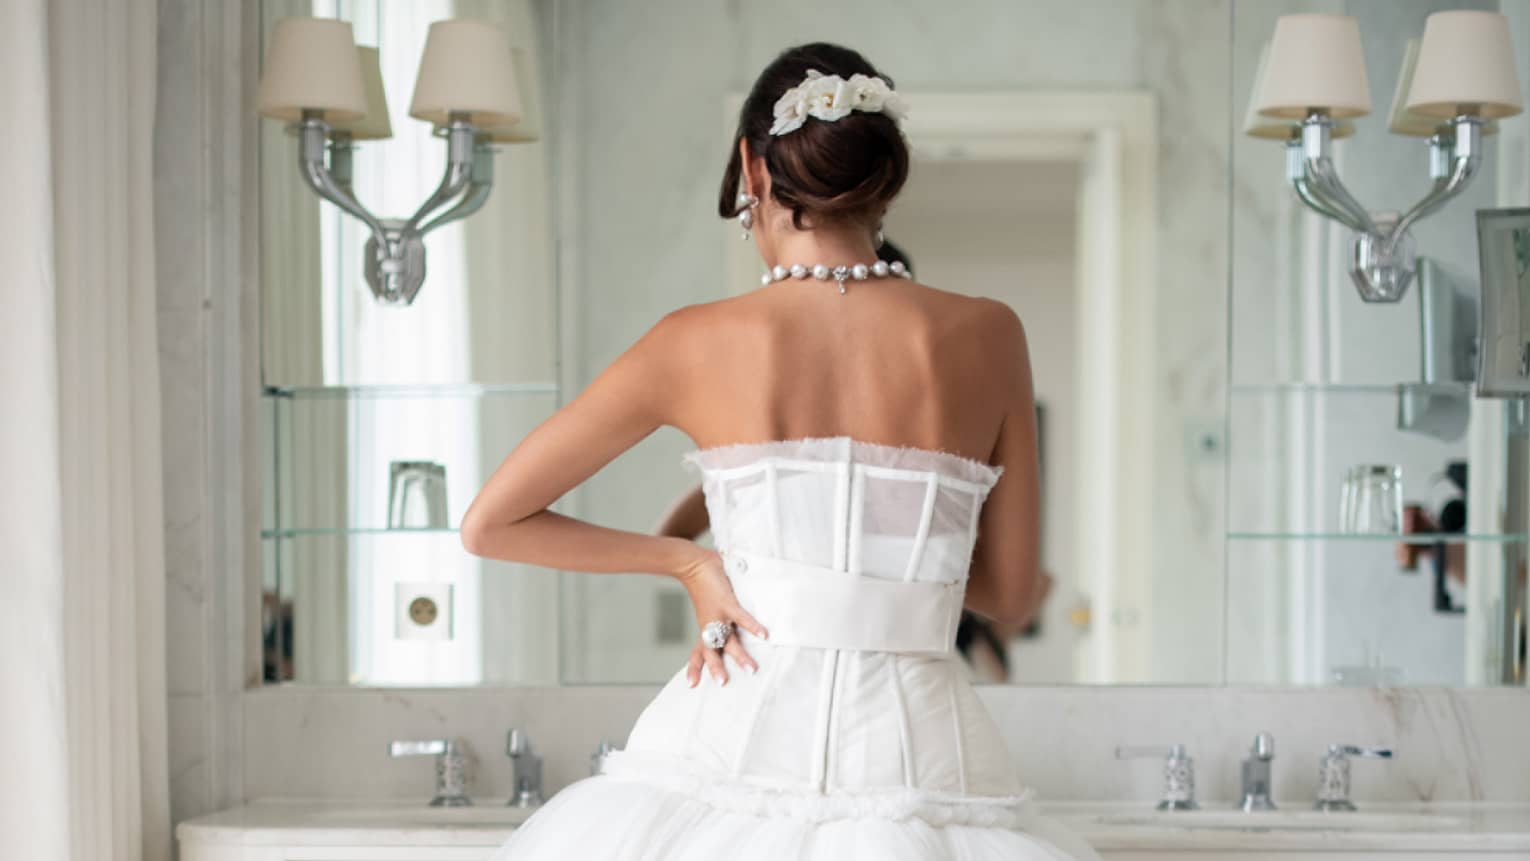 Back view of bride standing at vanity mirror in couture strapless wedding gown, hair up, hand on hip